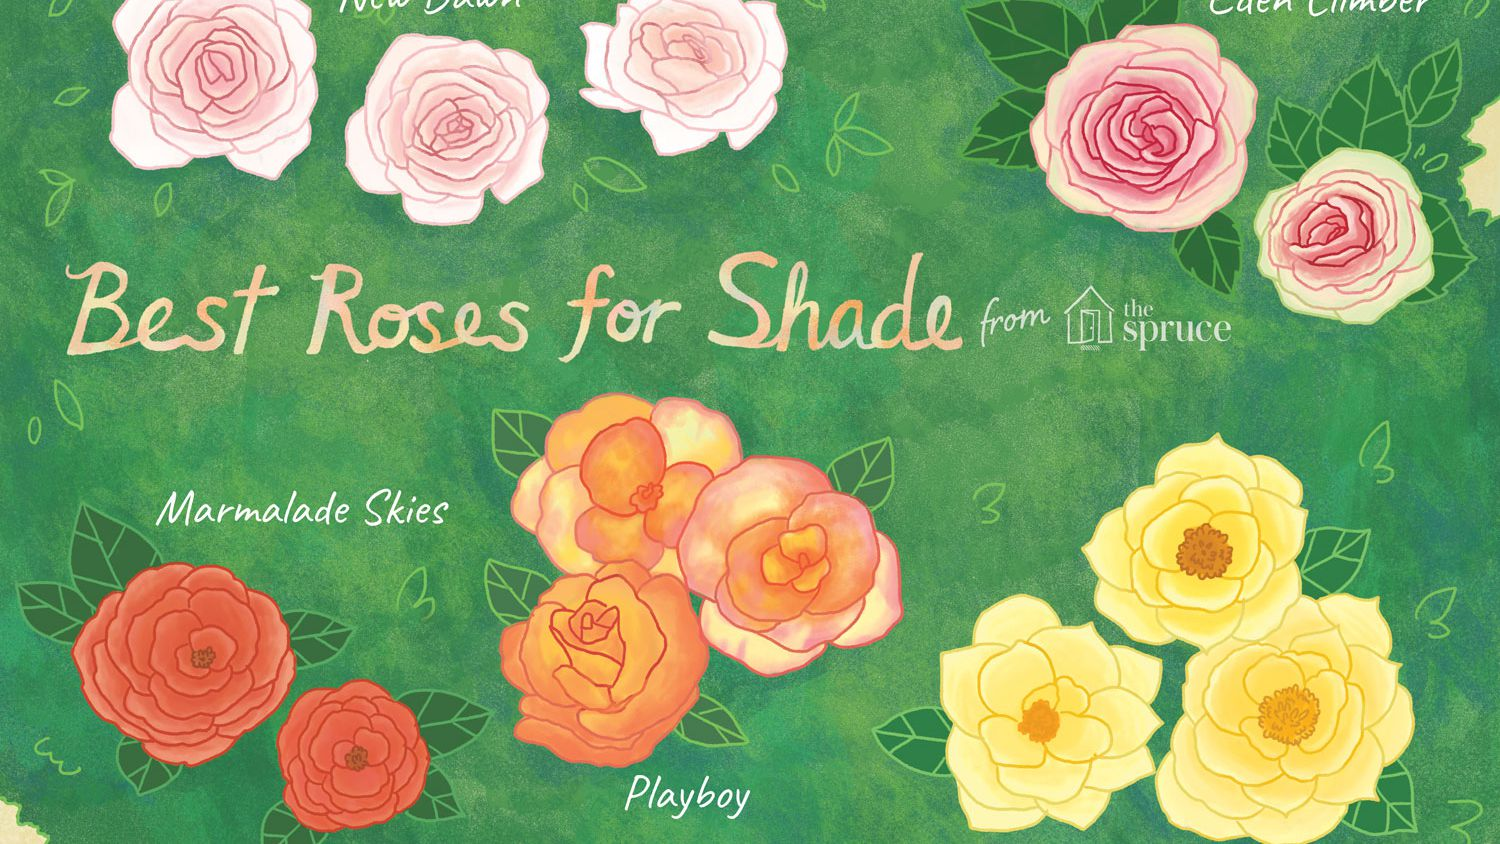 18 Great Roses Varieties For Shady Gardens